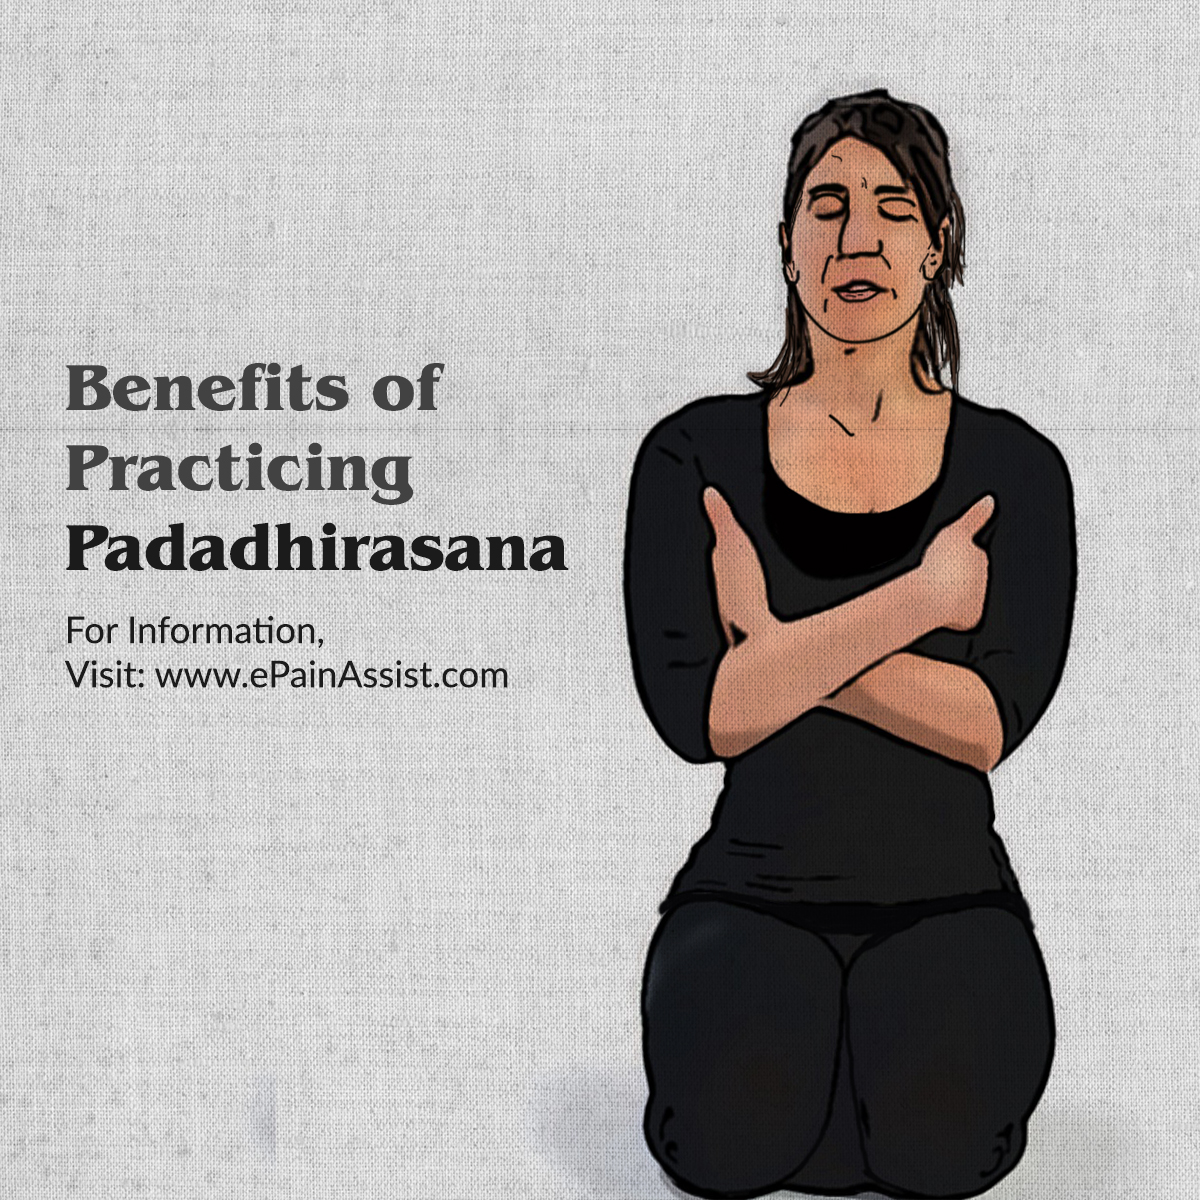 Benefits of Practicing Padadhirasana or the Breath Balancing Pose